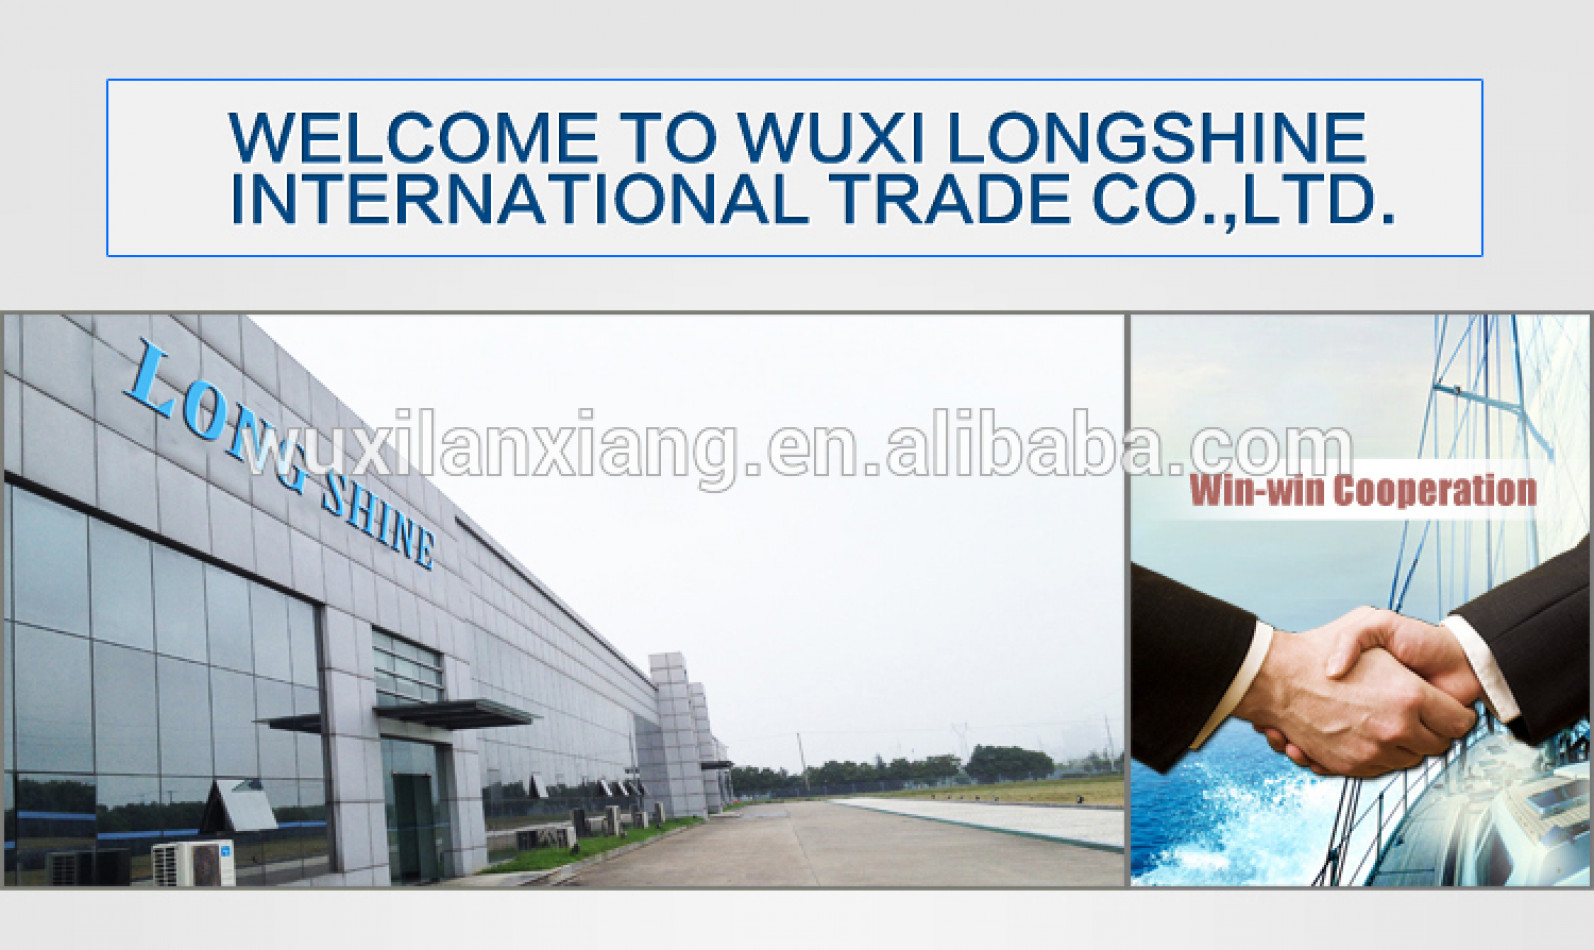 Wuxi Longshine International Trade Co., Ltd.